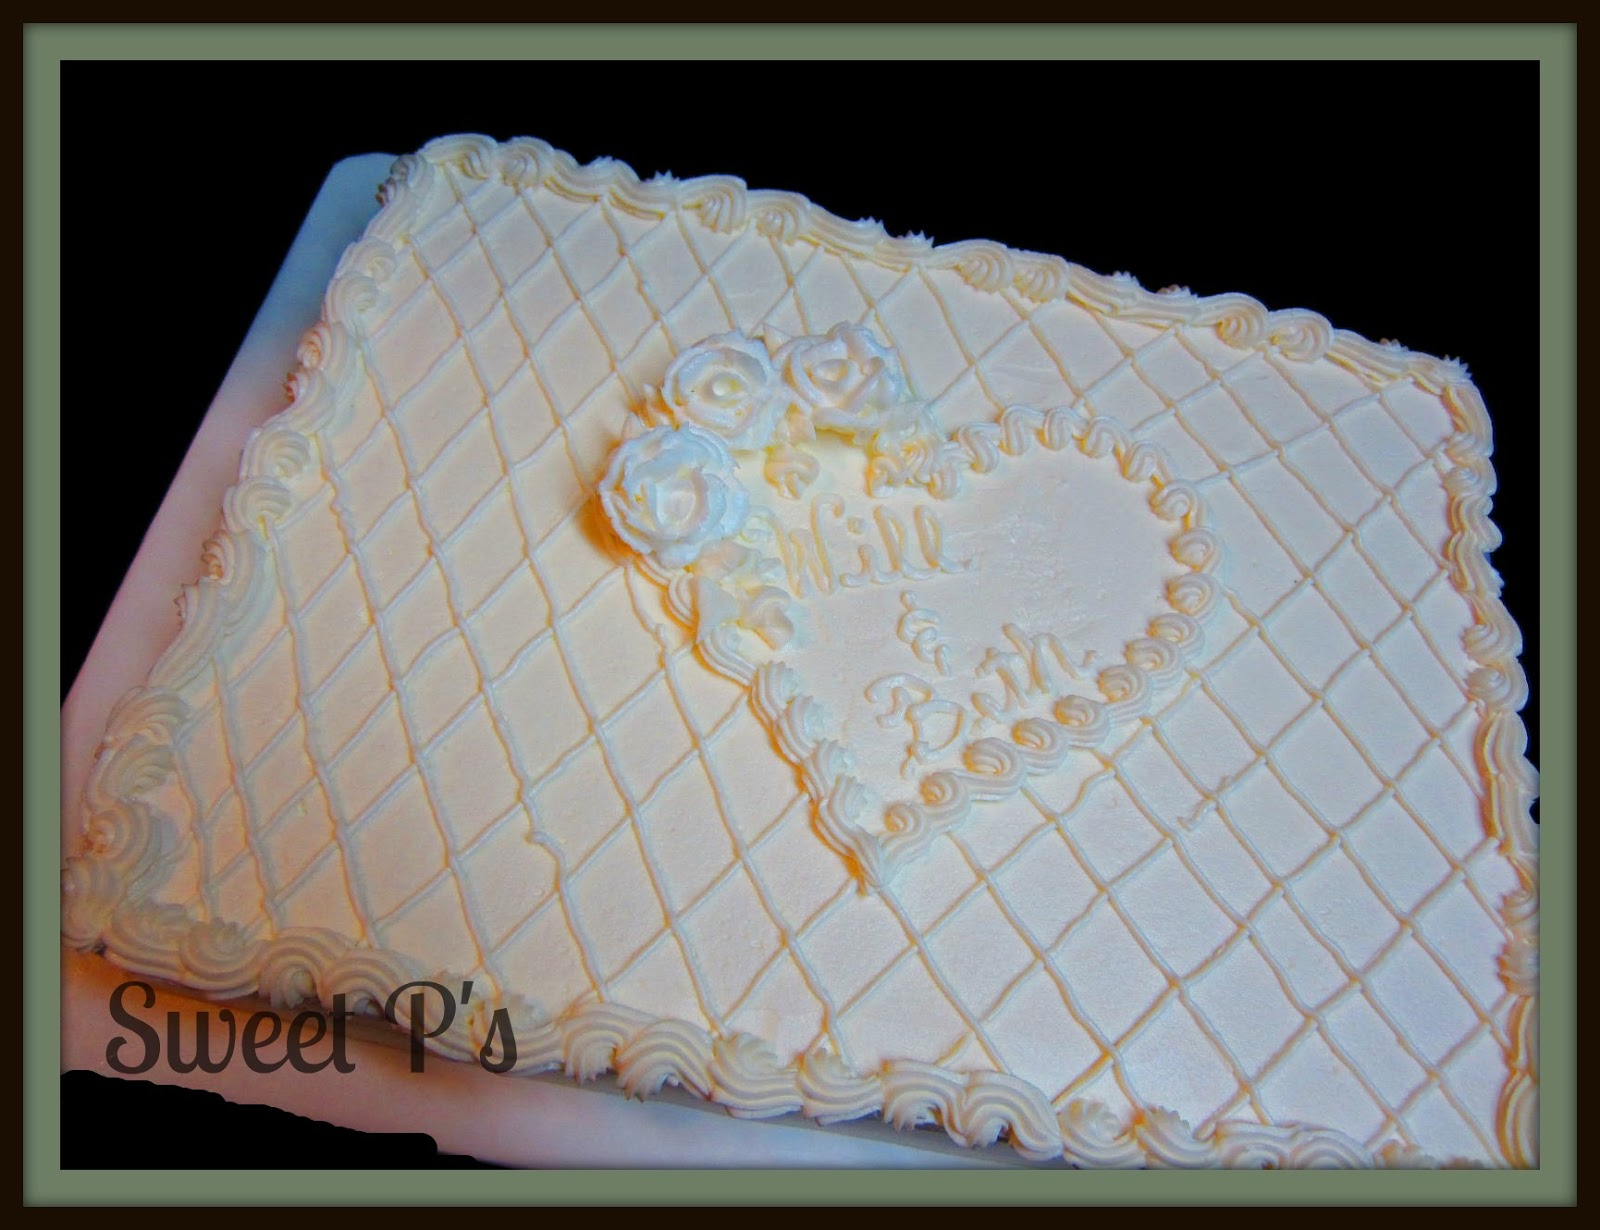 non traditional wedding cakes sweet p 39 s cake decorating baking blog. Black Bedroom Furniture Sets. Home Design Ideas